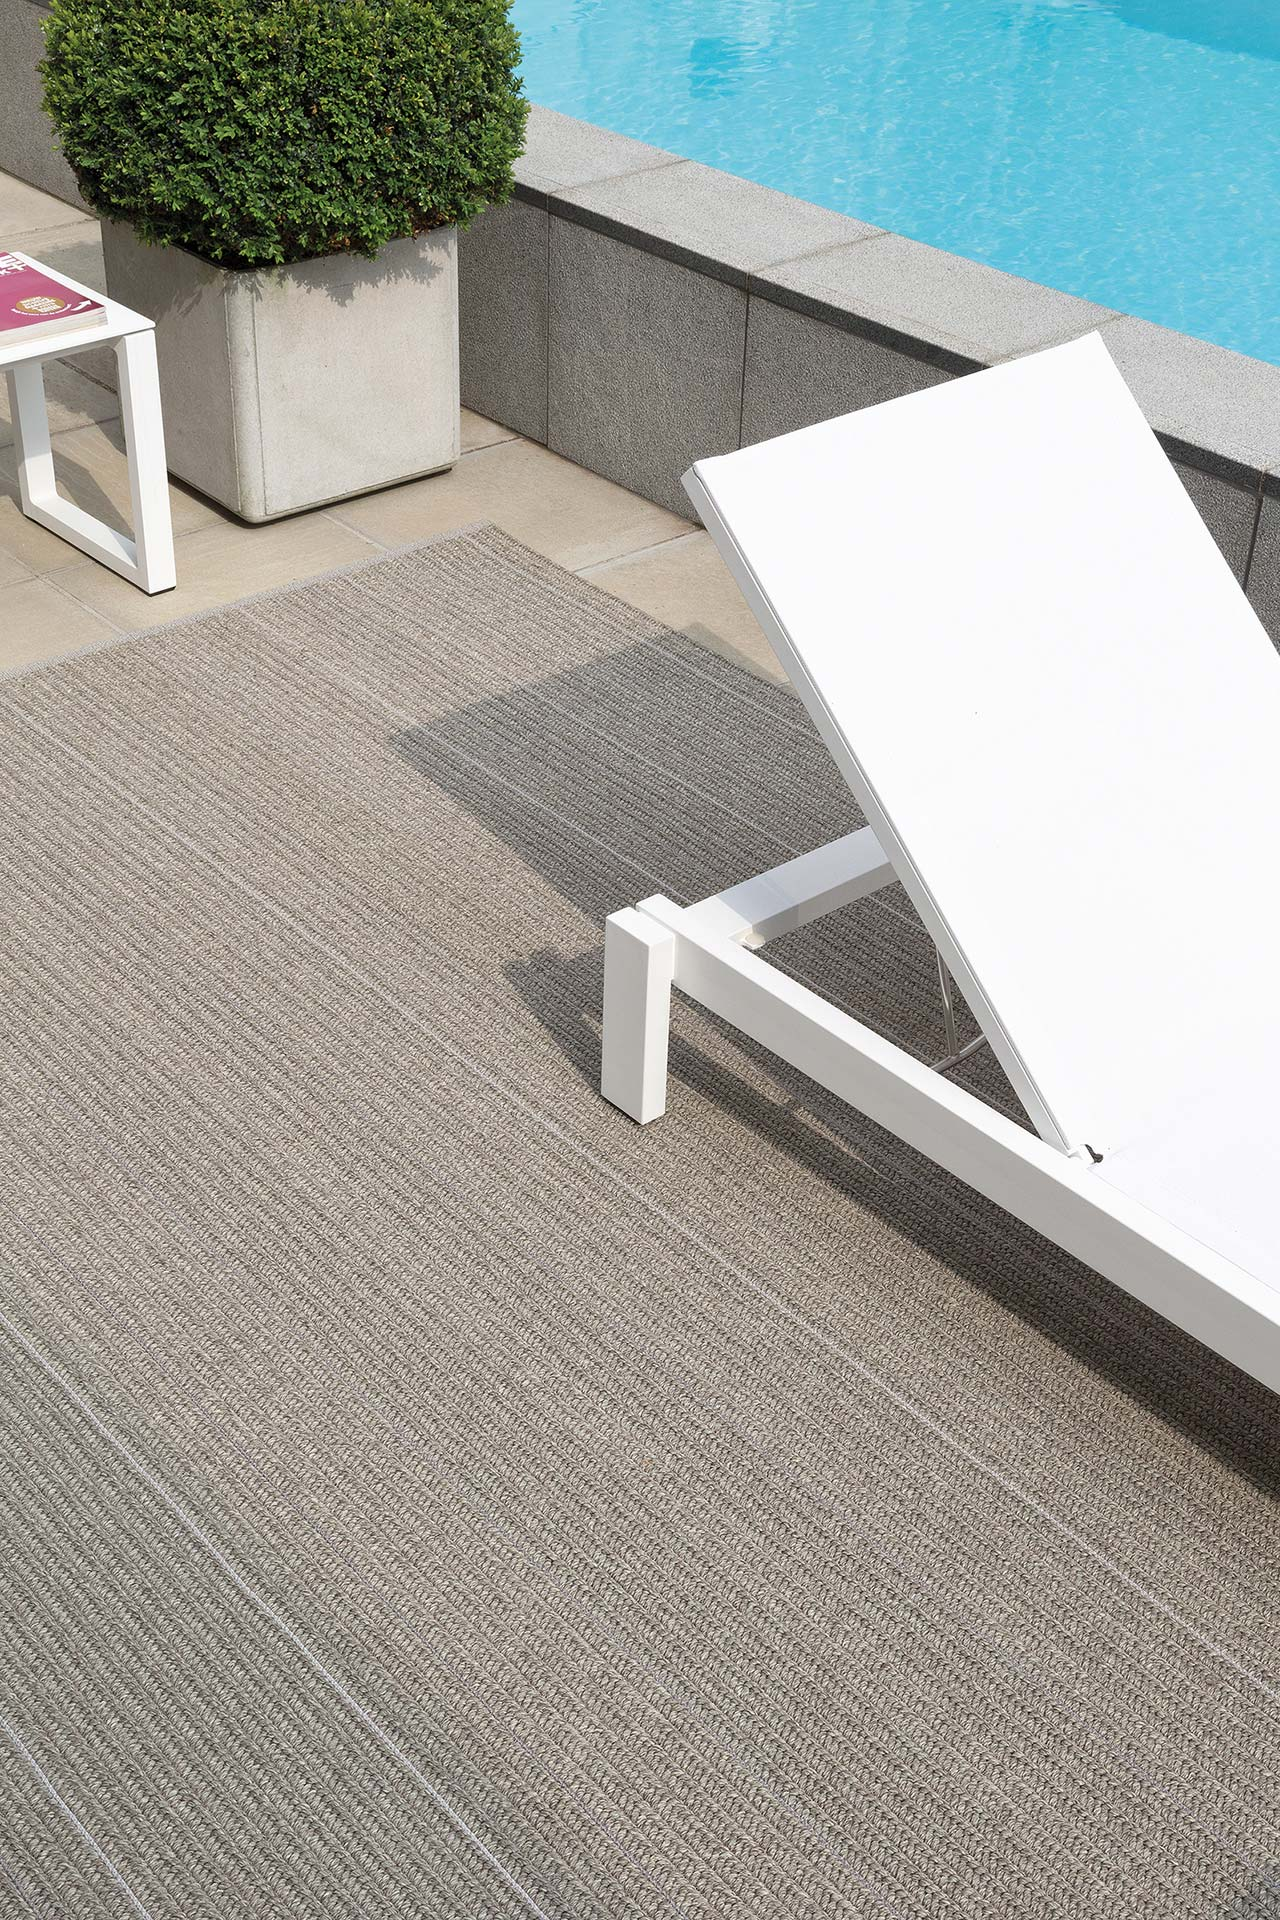 patio-moon-silver_sfeerbeeld_Limited-Edition_carpets.jpg